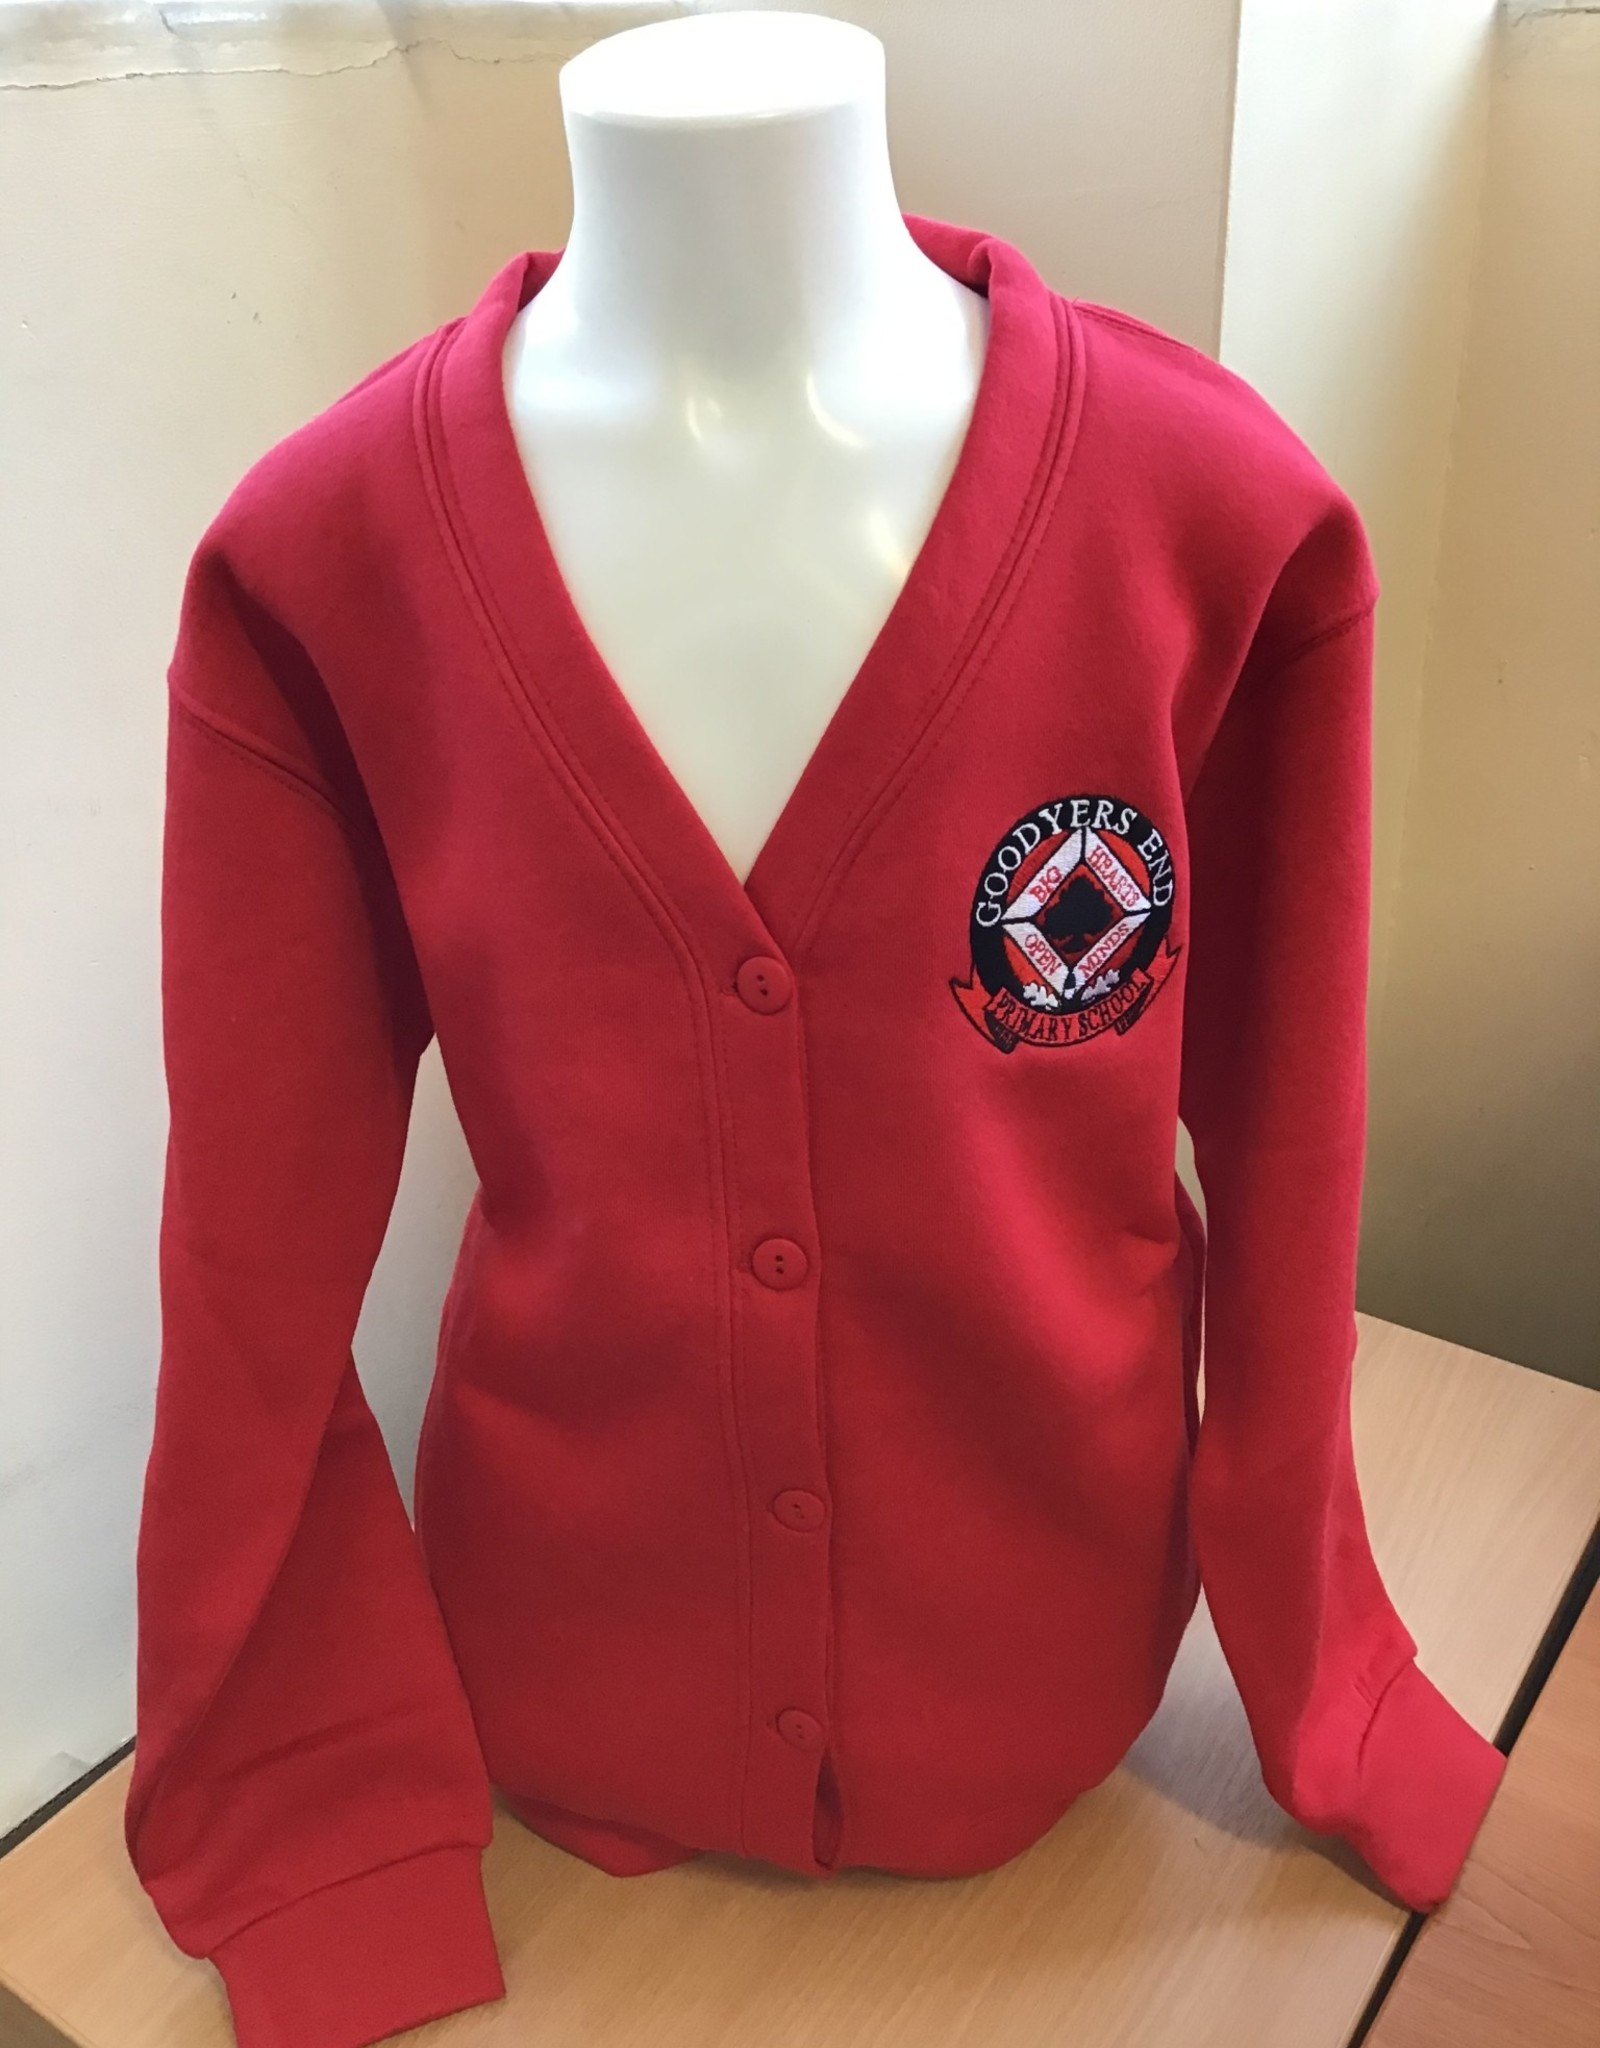 Cardigan Child Size - Goodyers End School